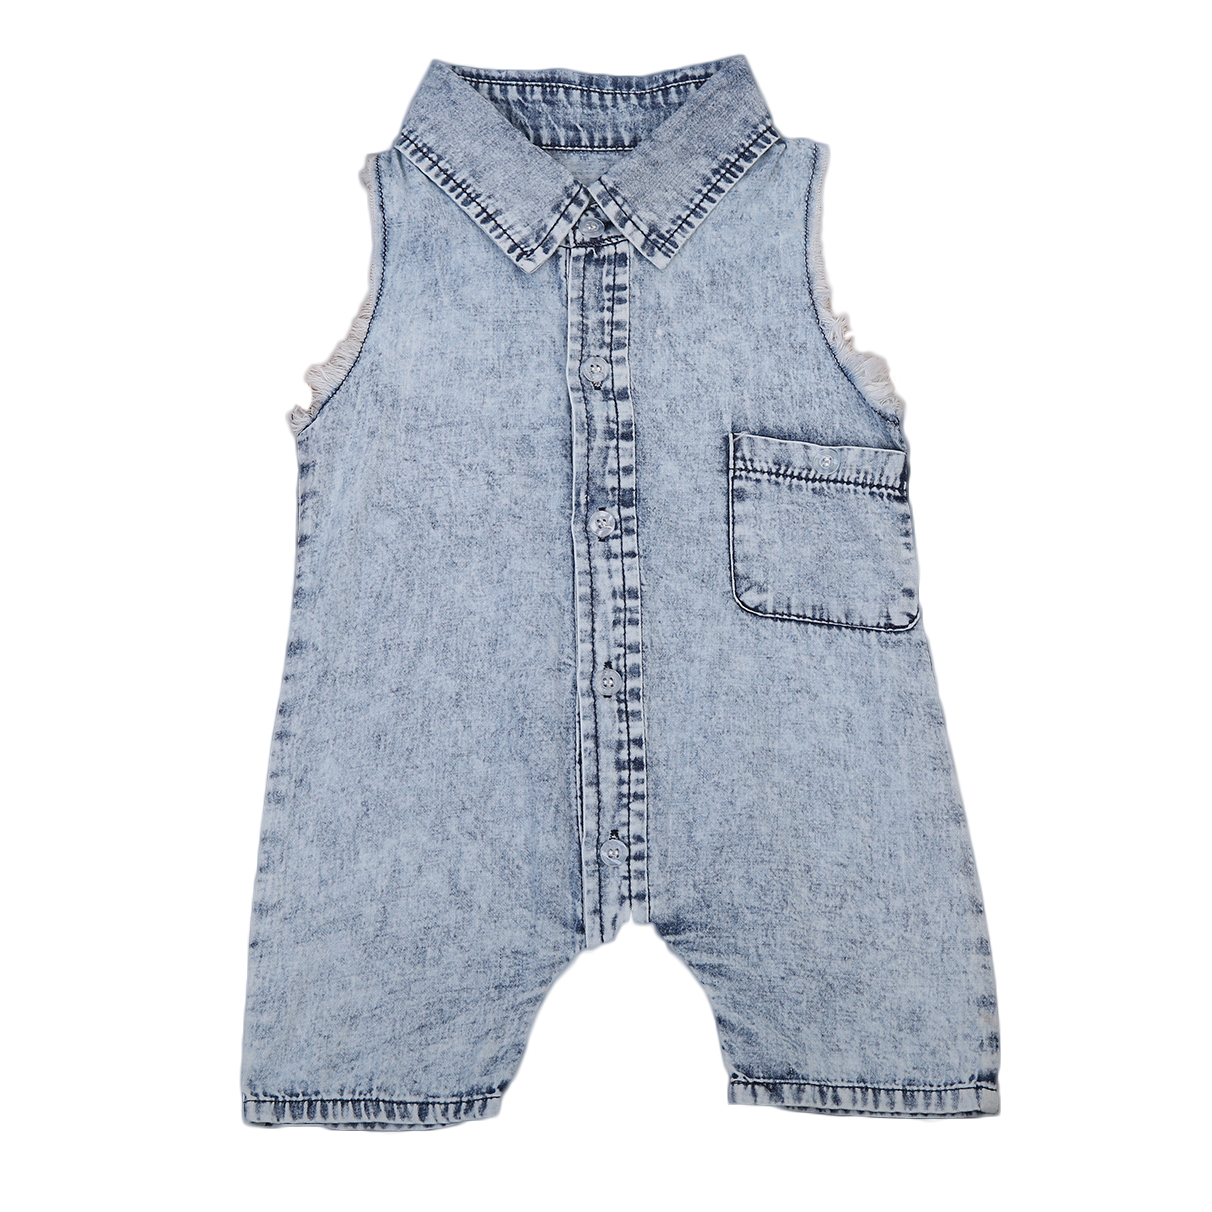 Cute Newborn Toddler Infant Baby Girl Sleeveless Denim Romper Jumpsuit Outfit Sunsuit Clothes newborn infant baby girl sleeveless denim romper jumpsuit toddler one pieces outfits summer sunsuit clothes